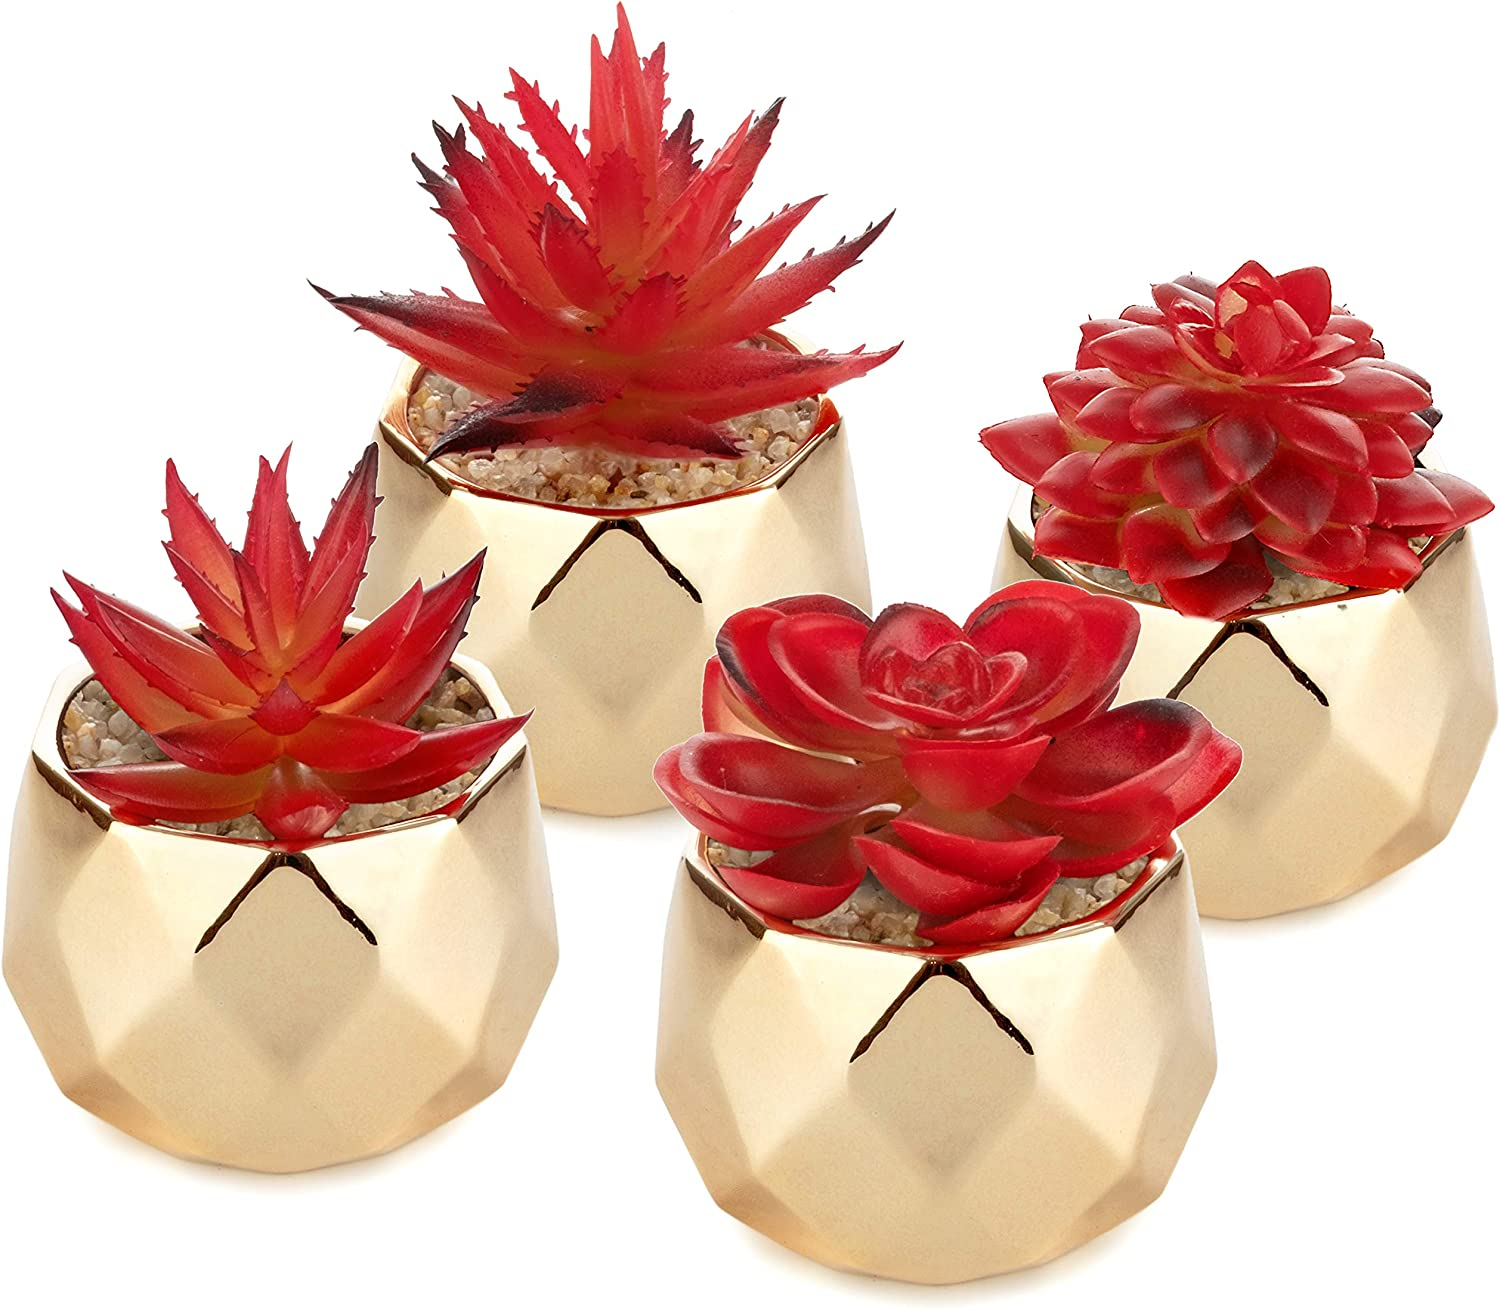 Artificial Succulents – Red Plants Shiny Gold Ceramic Pots for Home Decor - Set of 4 - 2 in/5cm Mini Planters - Perfect for Indoors and Outdoors - Living Room, Kitchen, Bathroom, Office, Desk, Bedroom